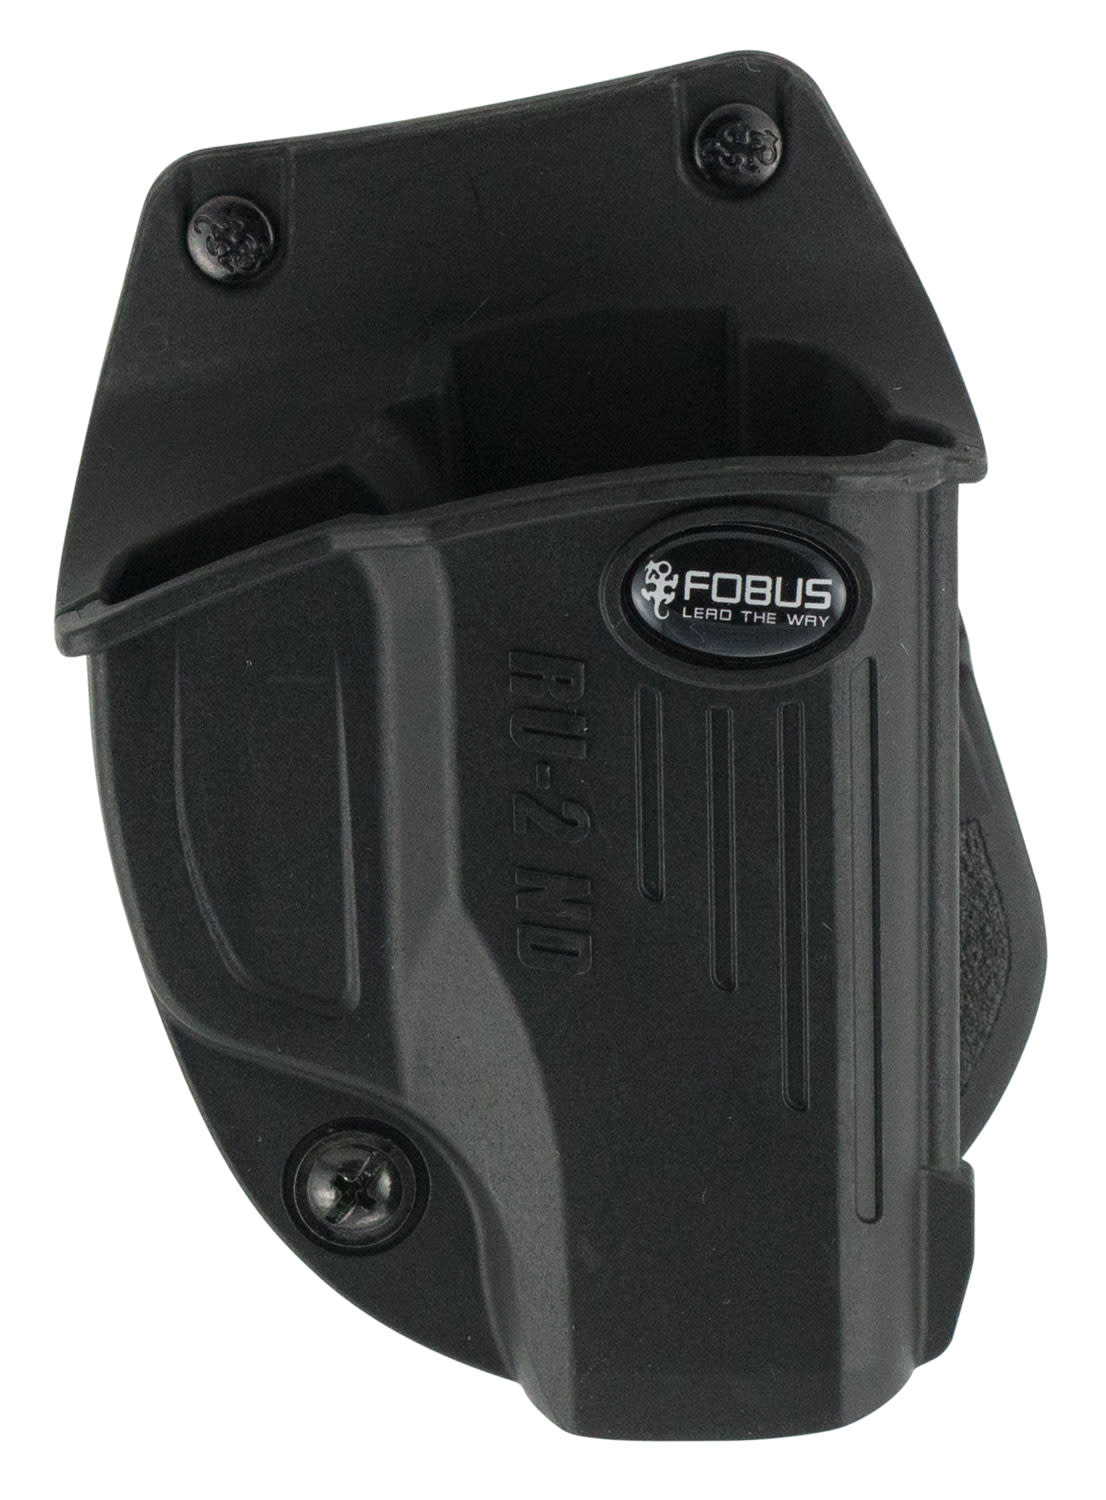 Fobus Evolution Paddle Holster - Beretta PX4 Storm